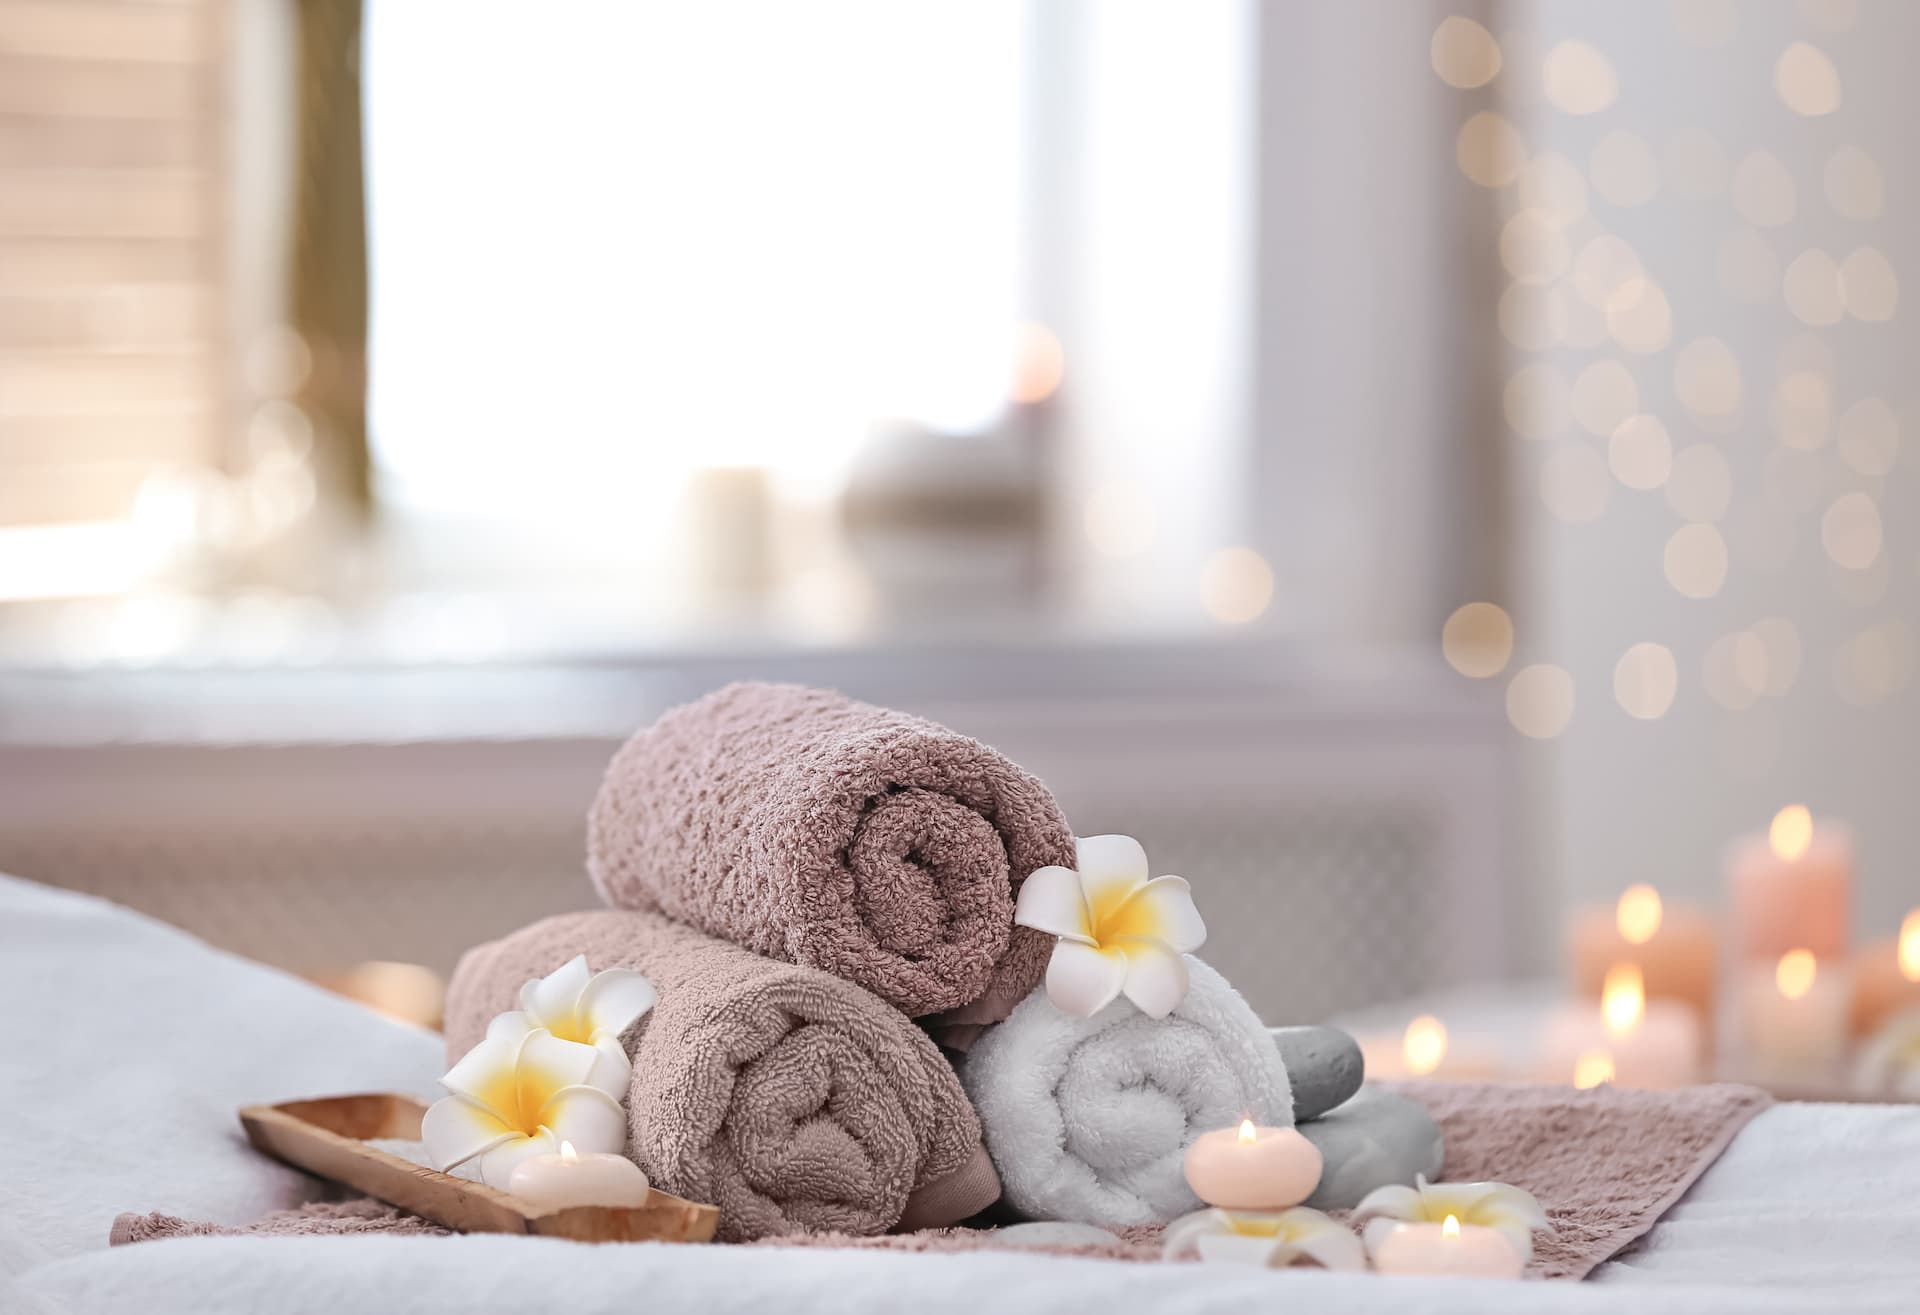 towels on massage table